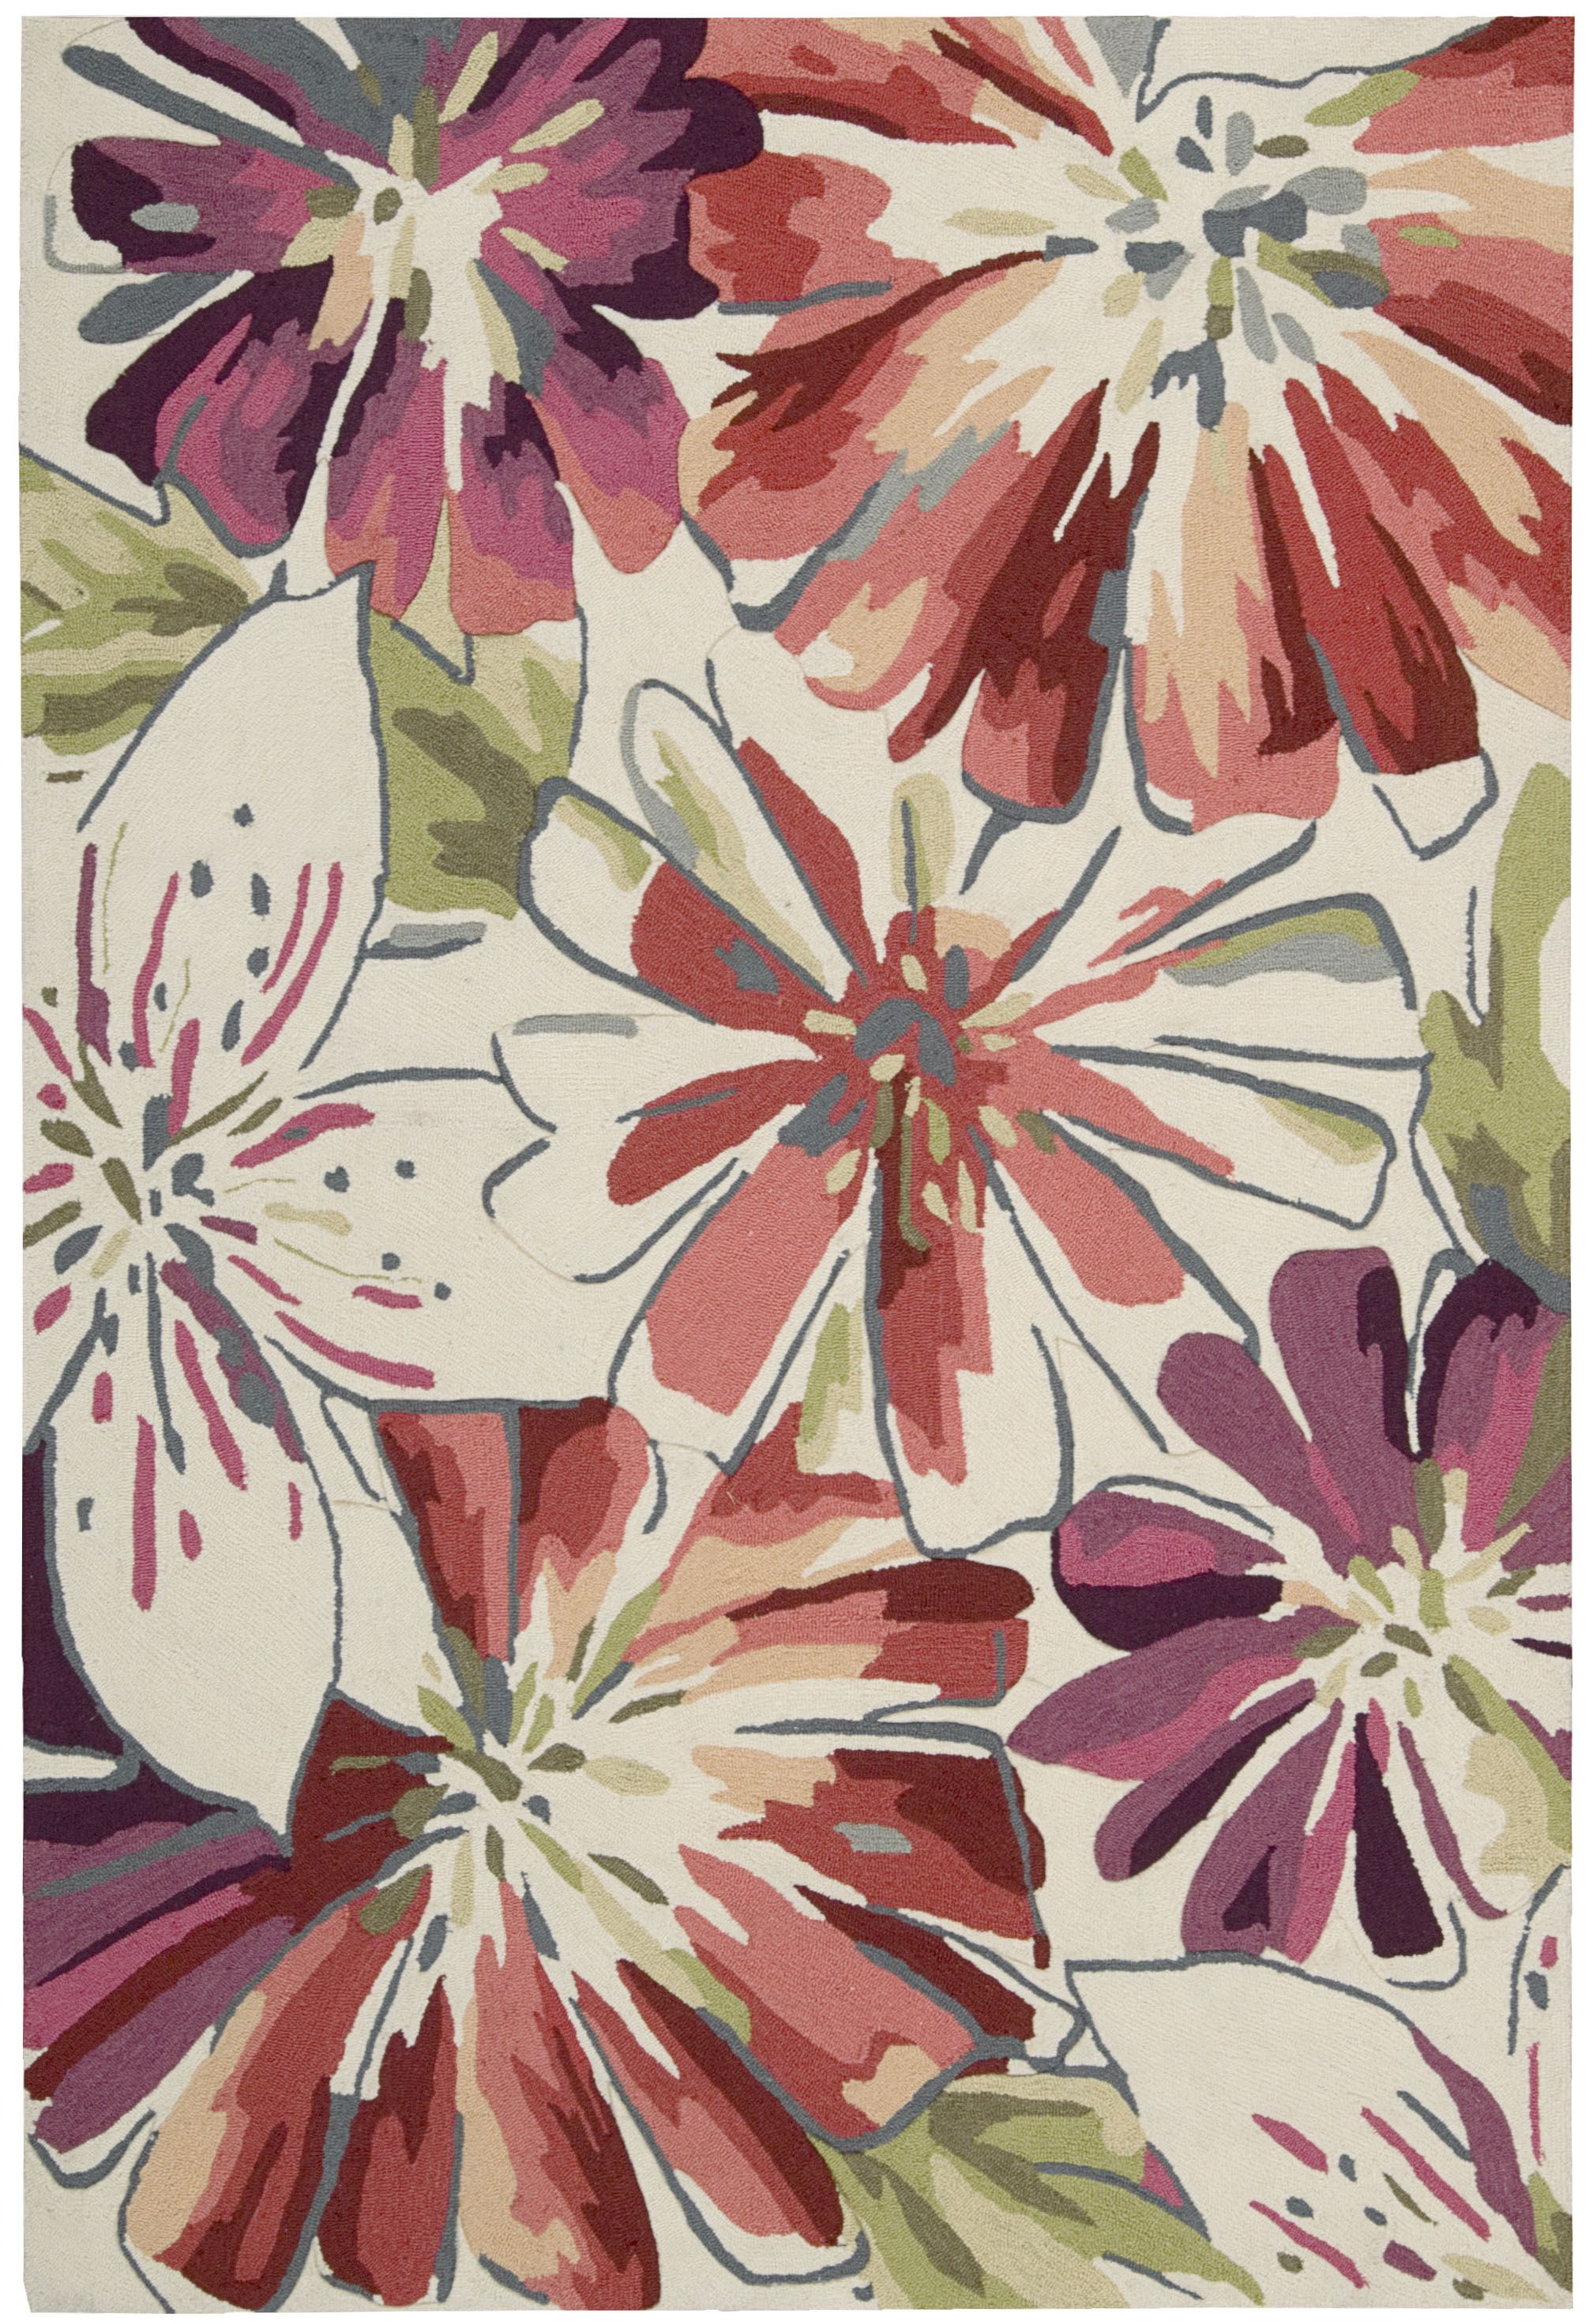 Nourison S Fantasy Collection Rug Highlights Hues Of Rose Vermillion Lavender Lilac And White